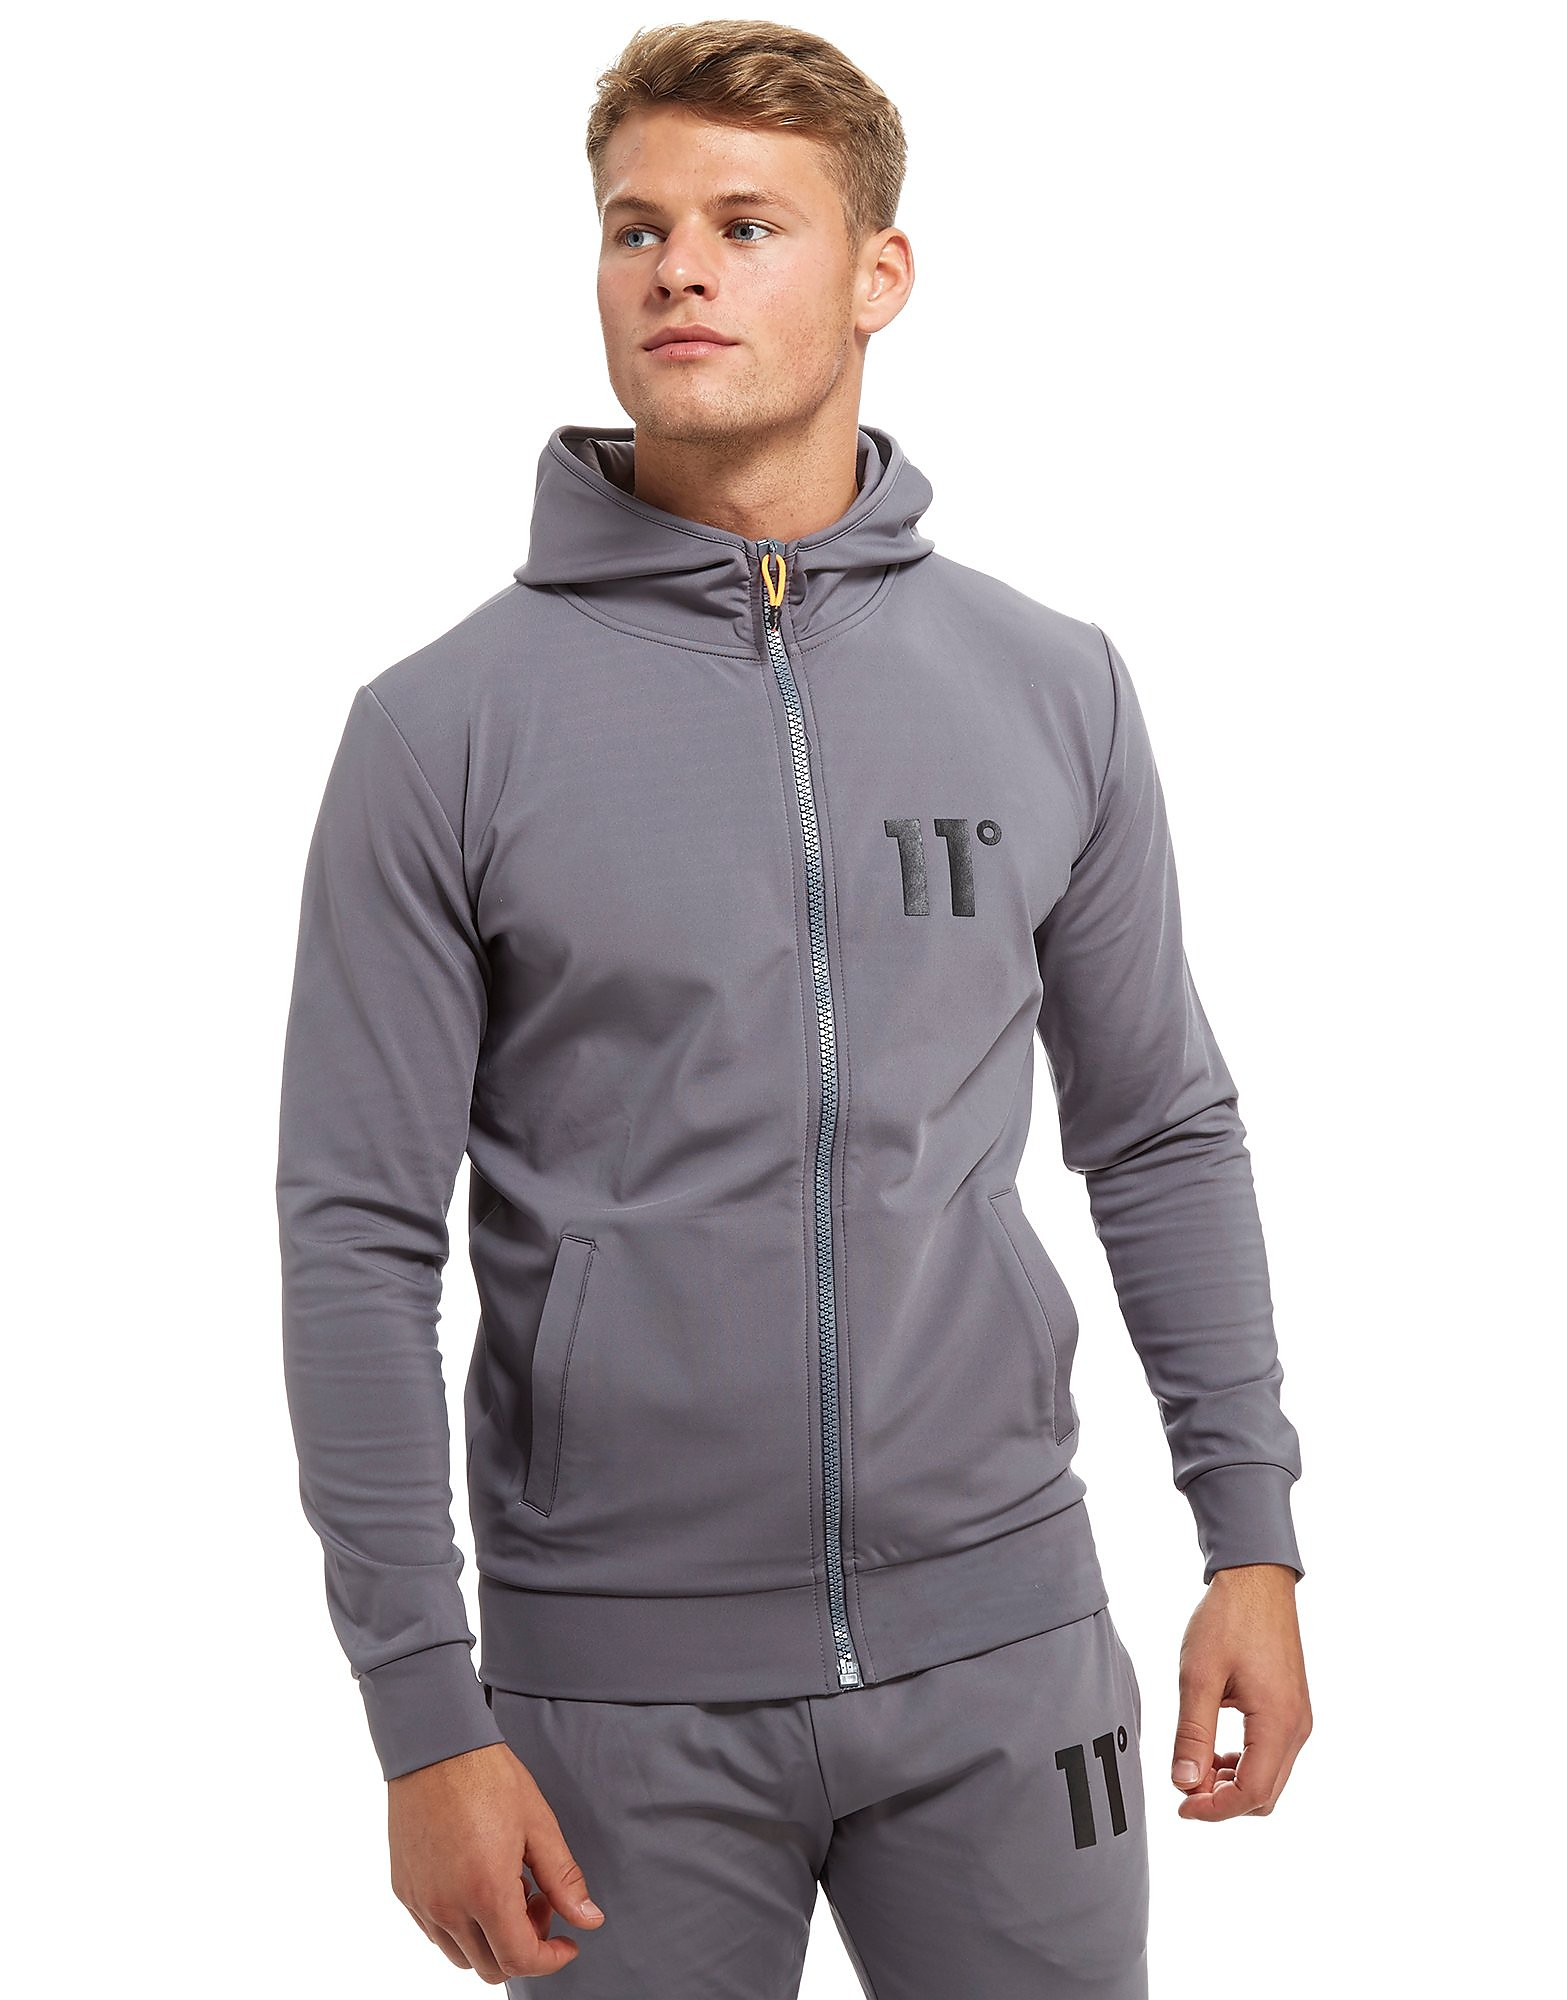 11 Degrees Sweat Core Poly Zip Homme - Charcoal, Charcoal